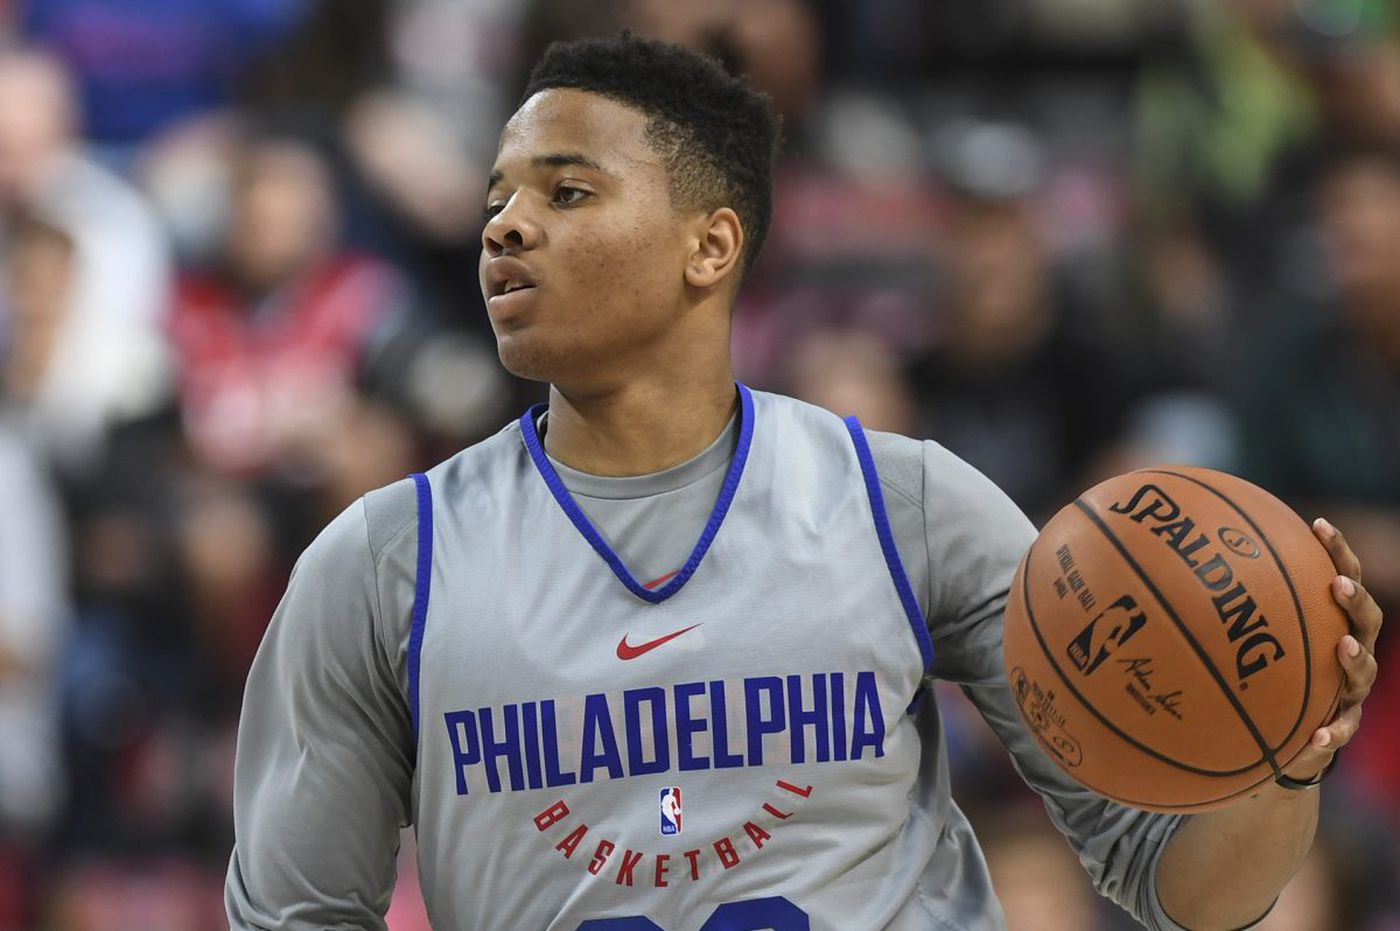 Apparently, Markelle Fultz's jump shot has emerged as an issue for Sixers